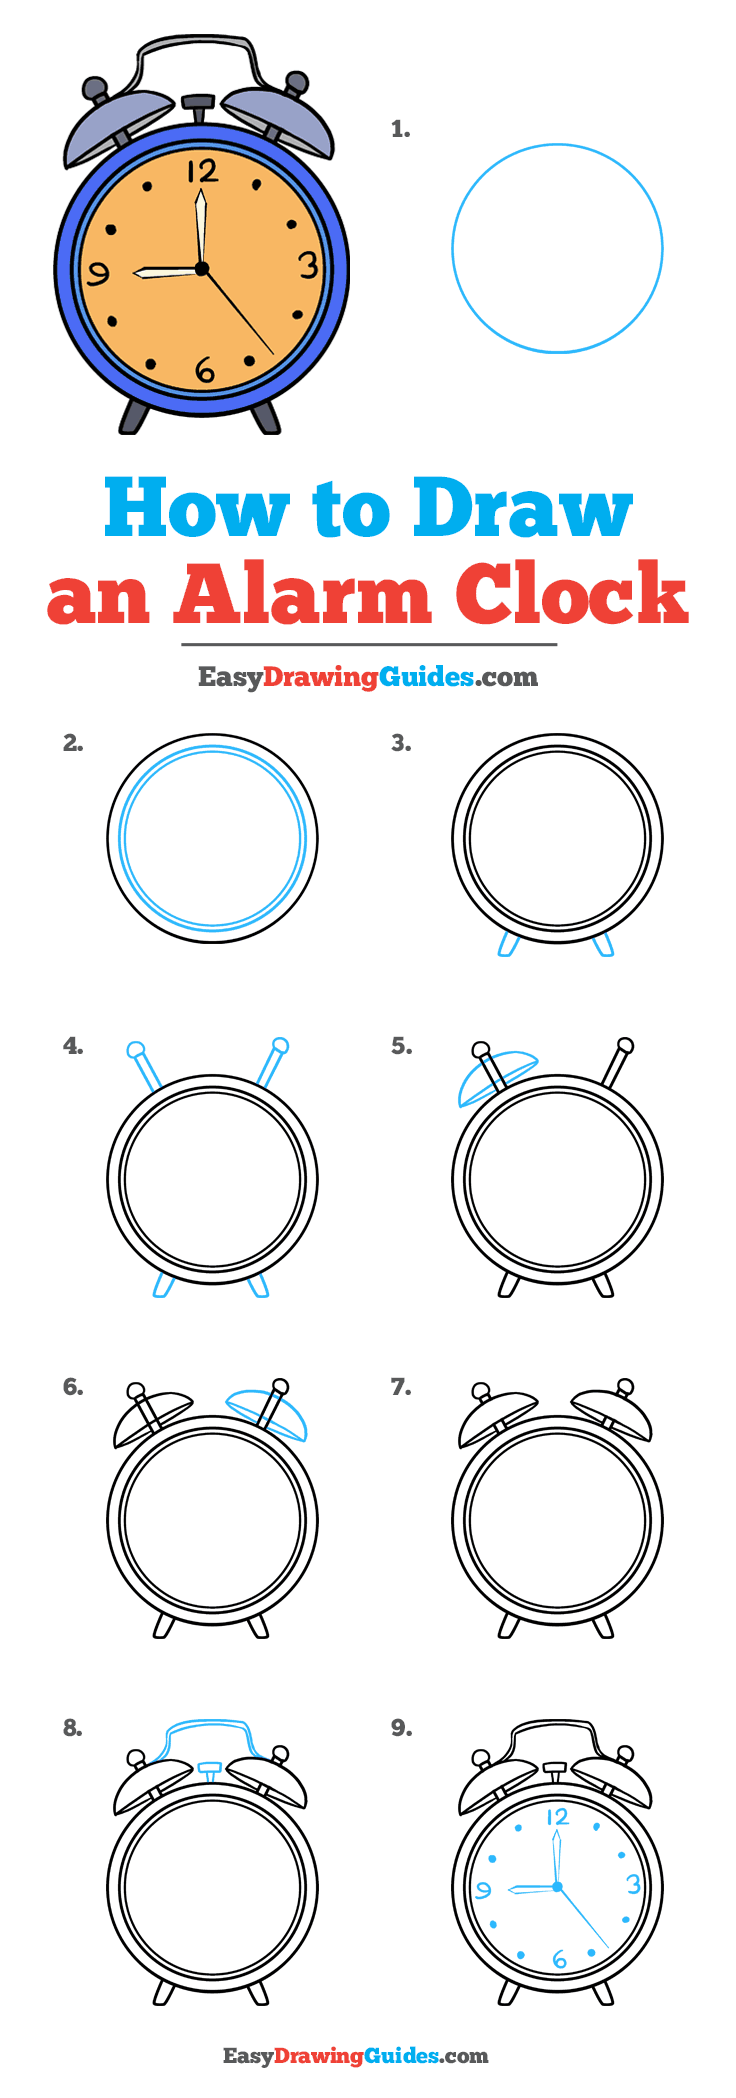 How to Draw an Alarm Clock: Step by Step Tutorial